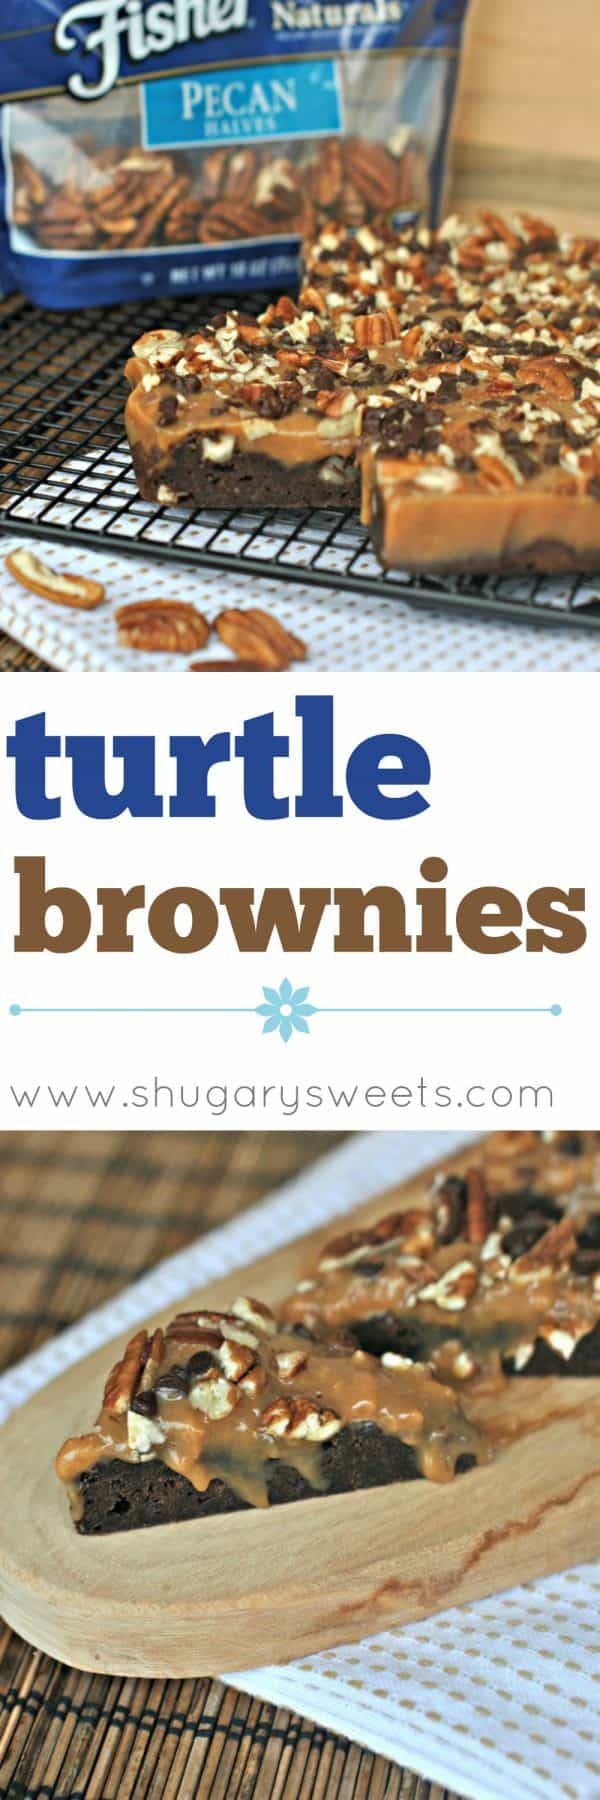 Homemade Browniestopped withgooey caramel, chocolate chips and Fisher Pecans. A decadent dessert!